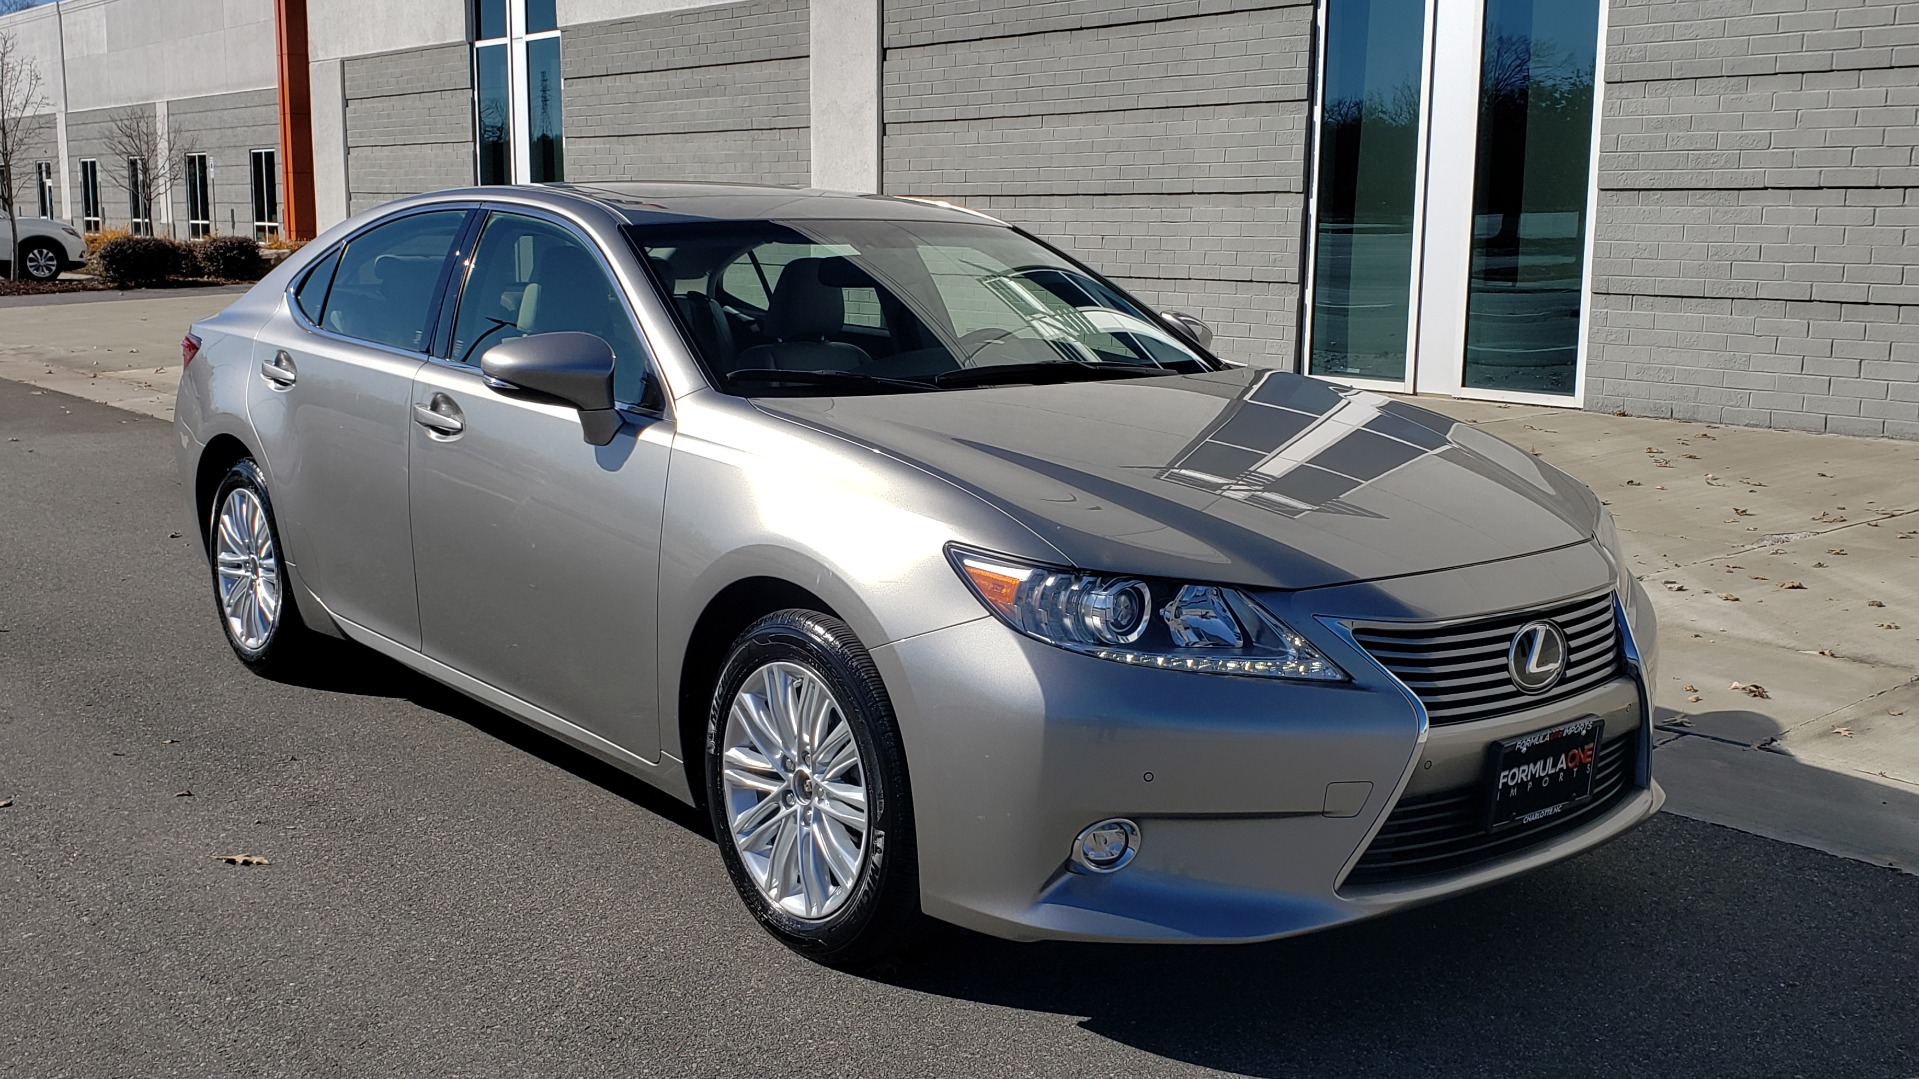 Used 2015 Lexus ES 350 LUXURY PKG / NAV / BSM / LCA / PARK ASSIST / REARVIEW for sale Sold at Formula Imports in Charlotte NC 28227 4